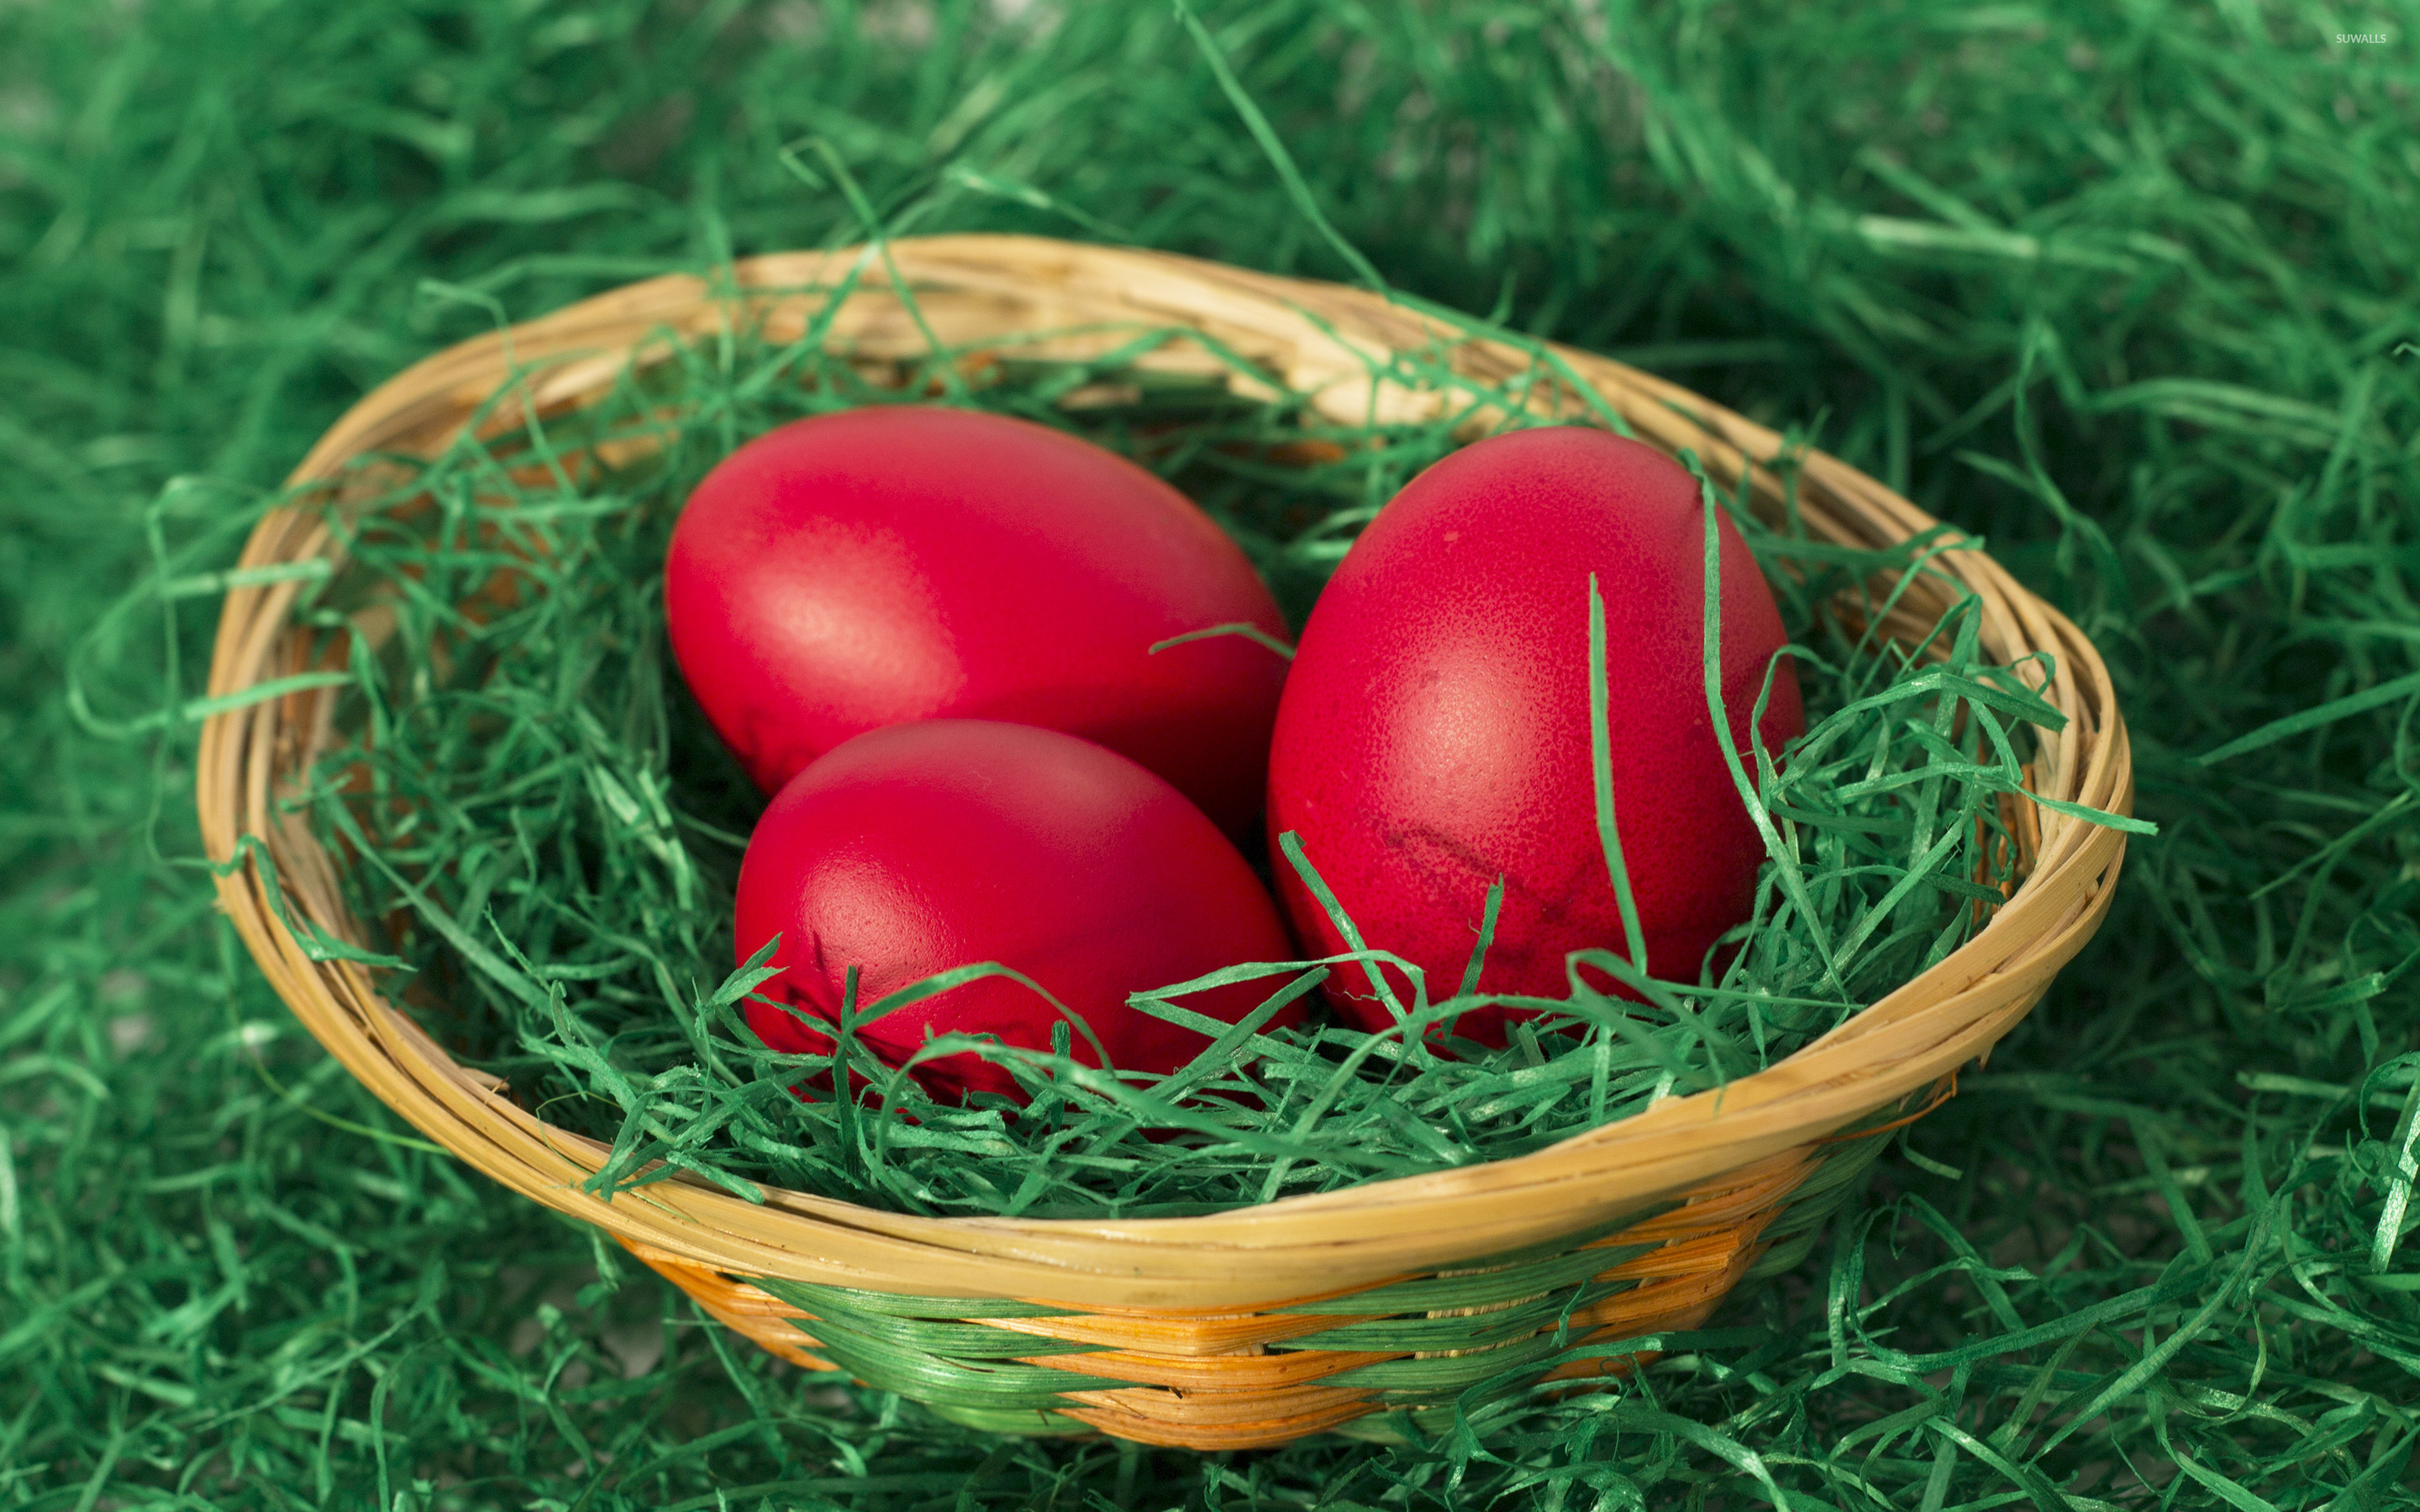 Easter eggs in a basket wallpaper - Holiday wallpapers - #40752 for Easter Eggs In A Basket Wallpaper  117dqh